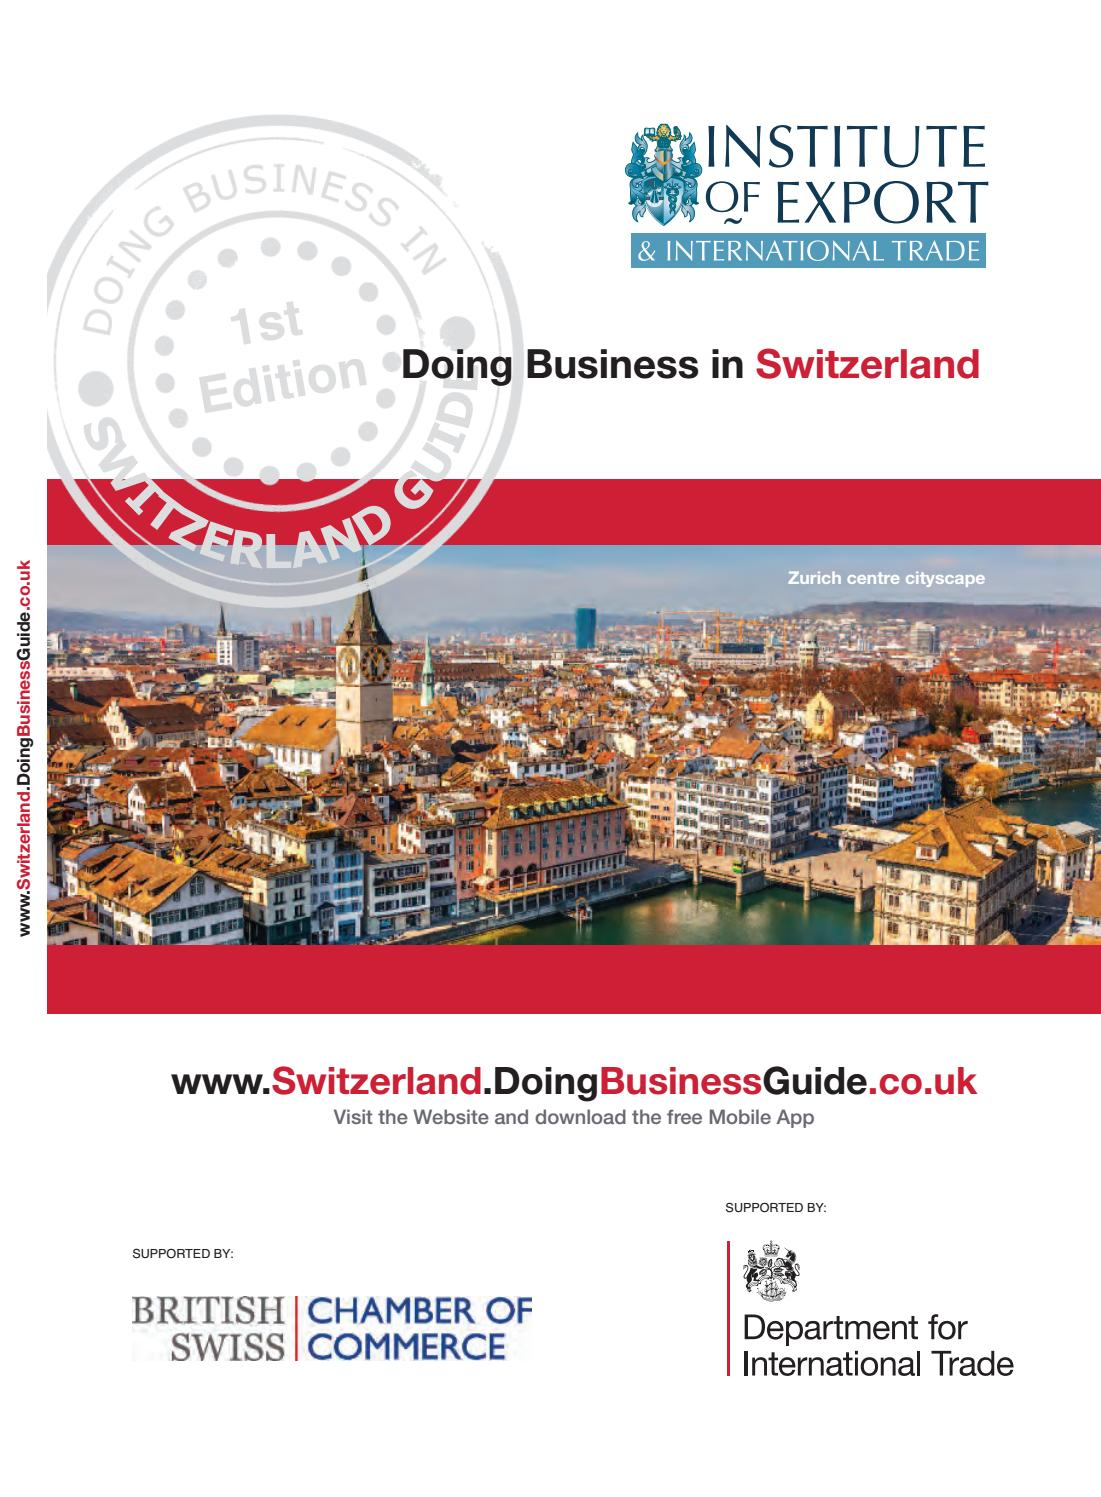 Doing Business in Switzerland Guide by Doing Business Guides